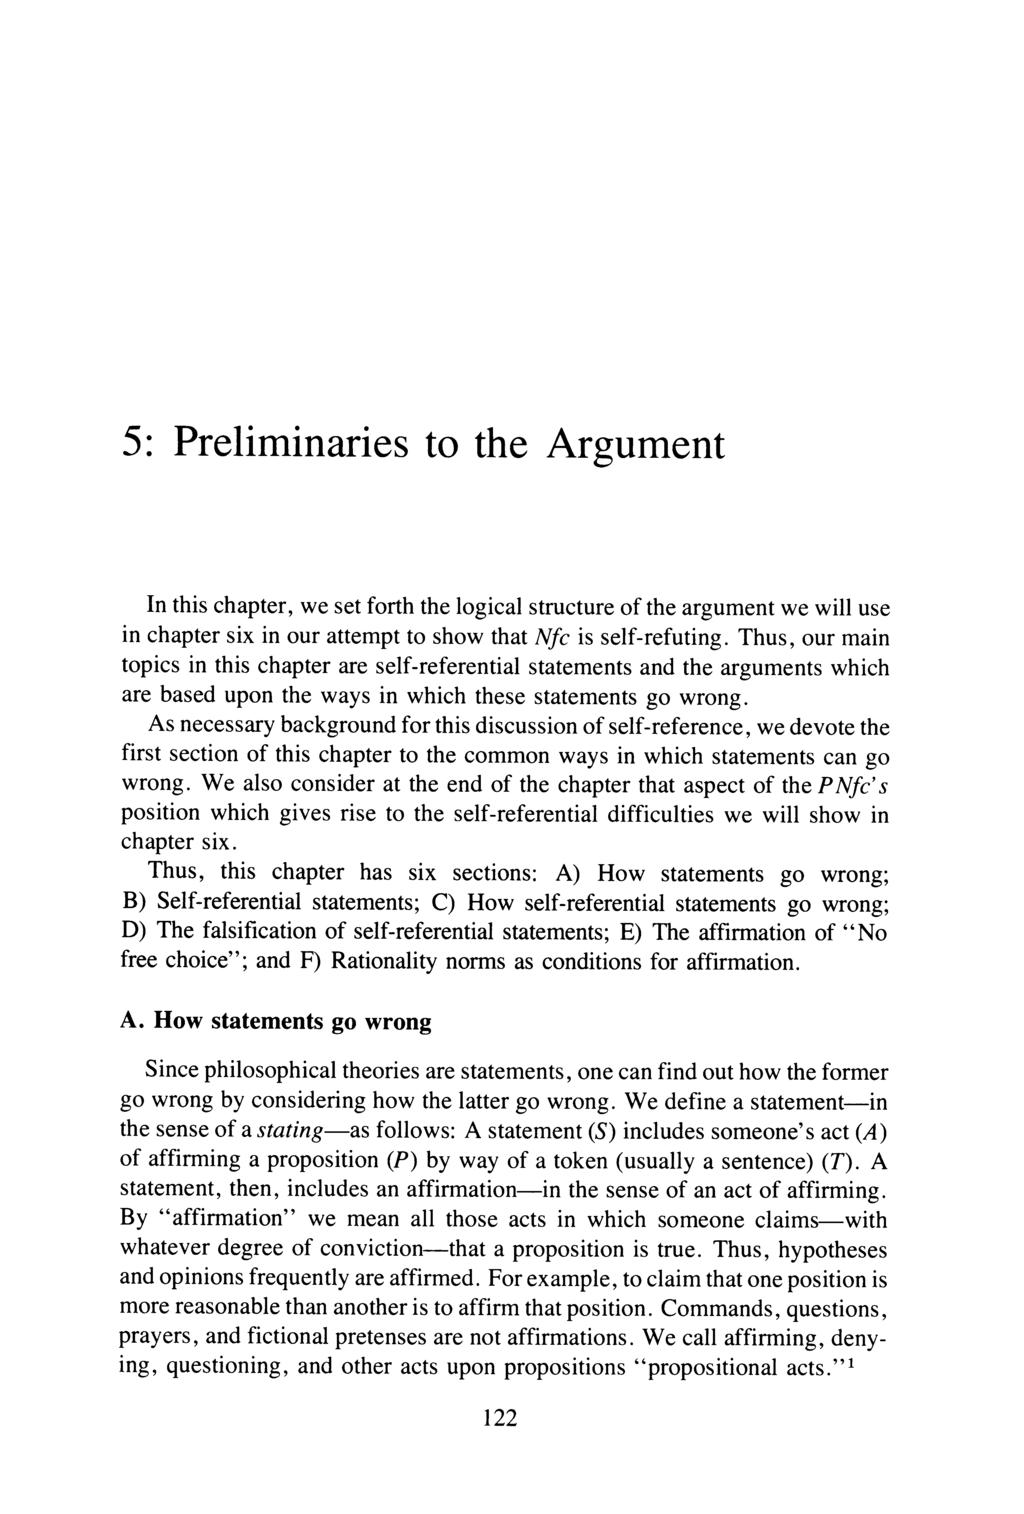 5: Preliminaries to the Argument In this chapter, we set forth the logical structure of the argument we will use in chapter six in our attempt to show that Nfc is self-refuting.